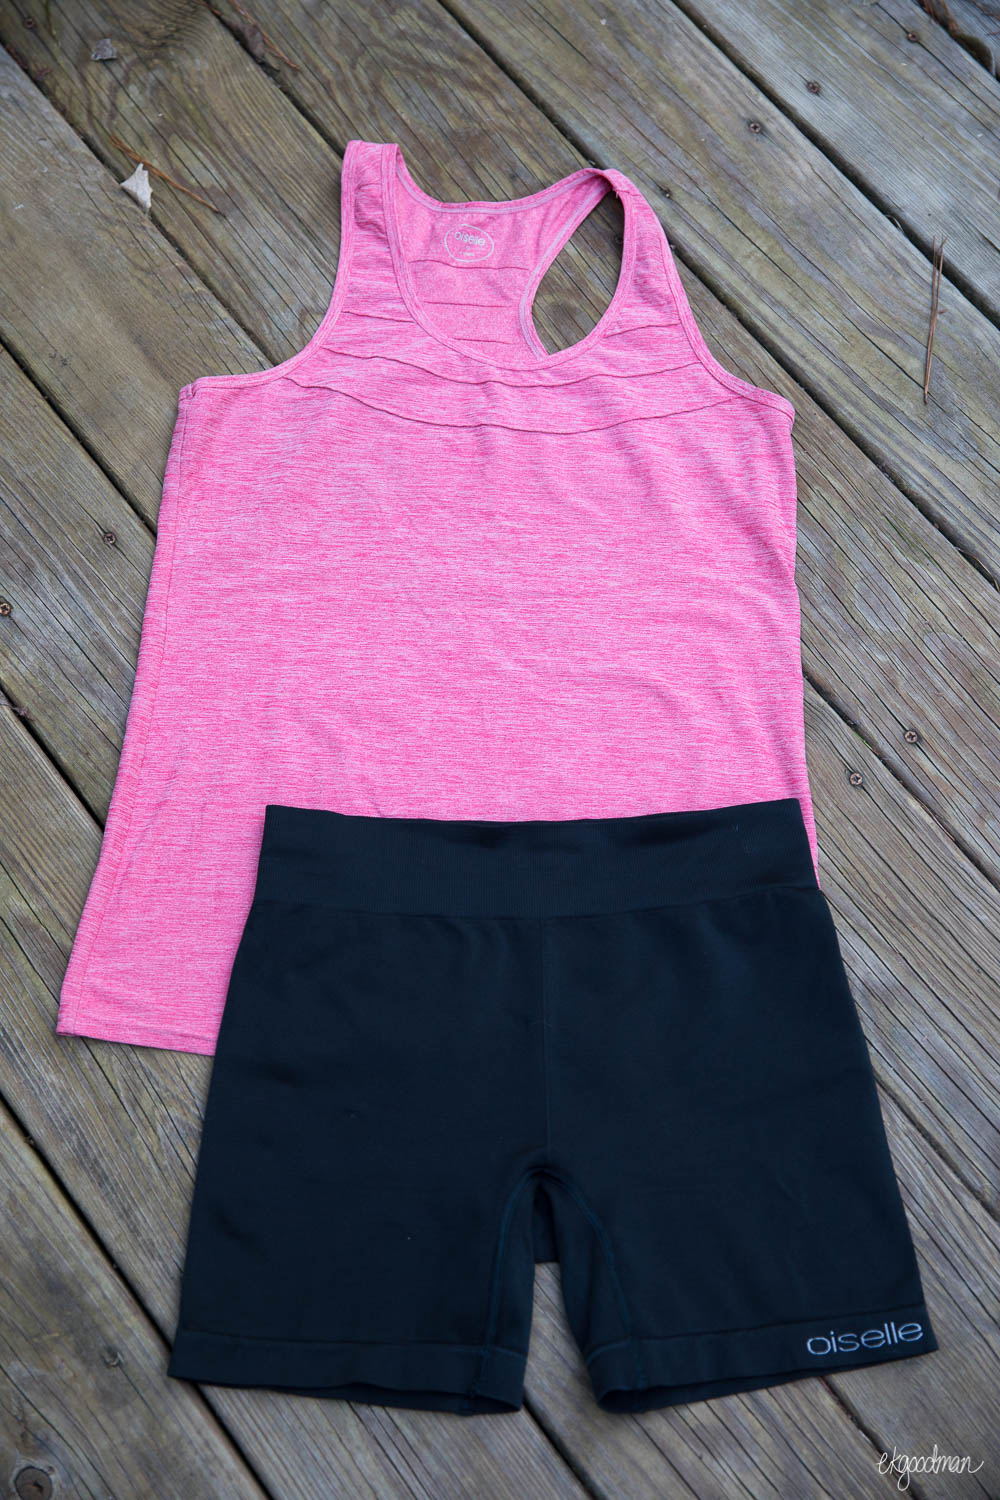 Oiselle Long Flyte Compression Shorts for Running